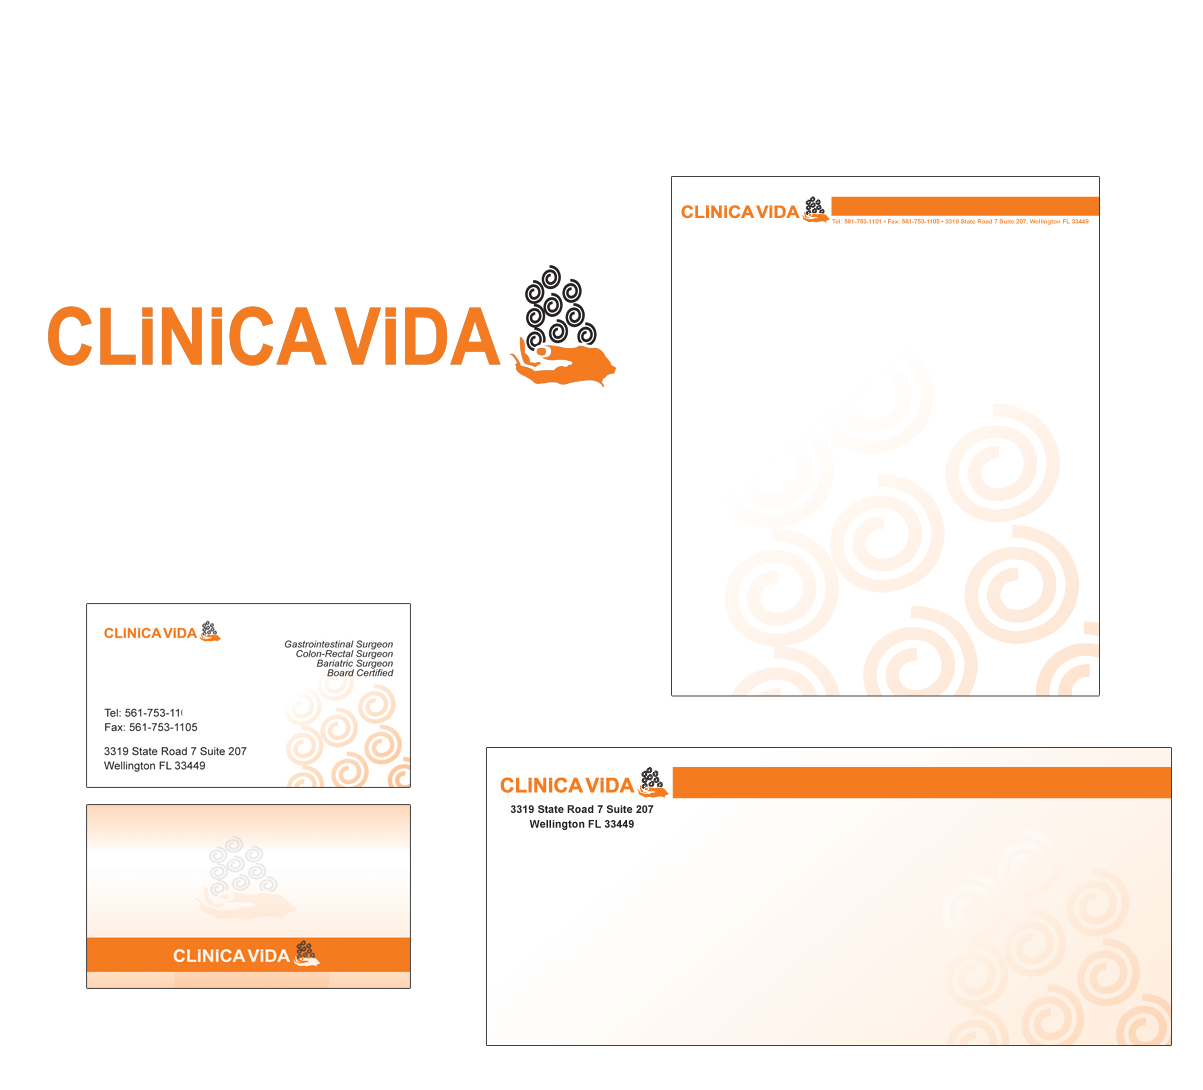 Clinica Vida Logo Design, business card, letterhead and enveloped design